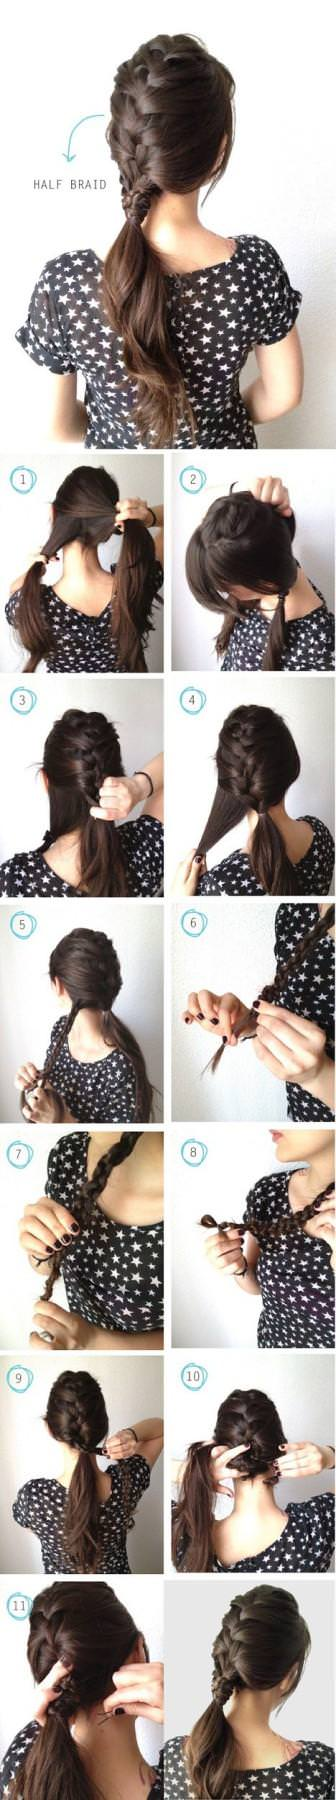 How-to-make-half-braid-for-your-hair